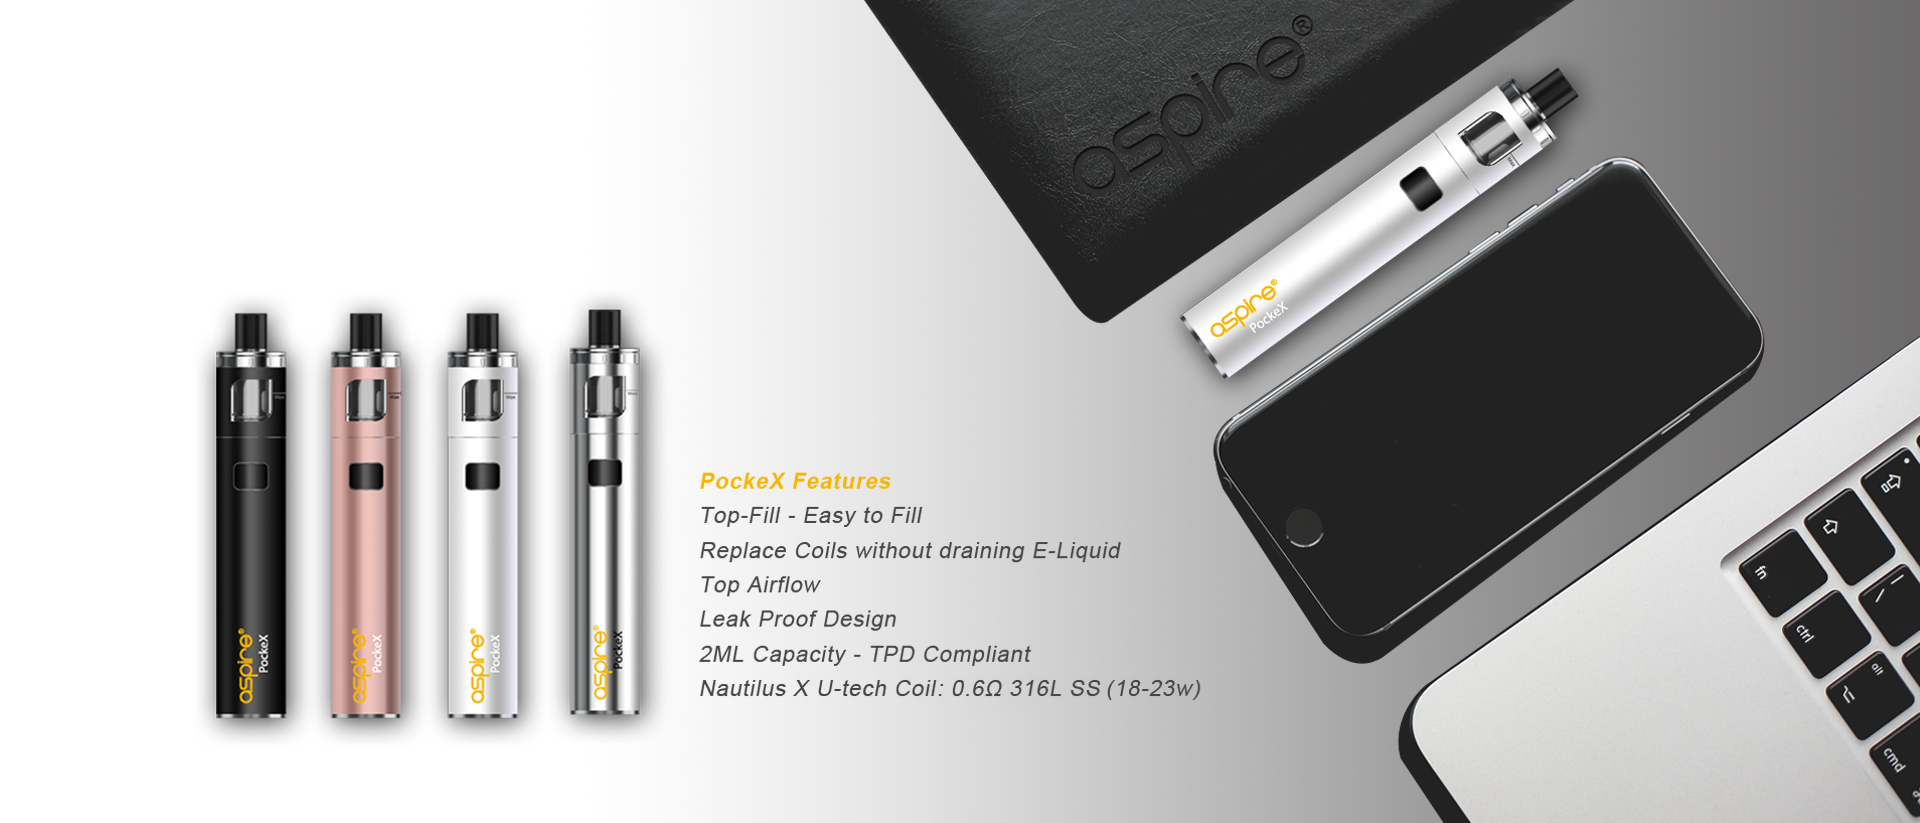 aspire pckex pocket